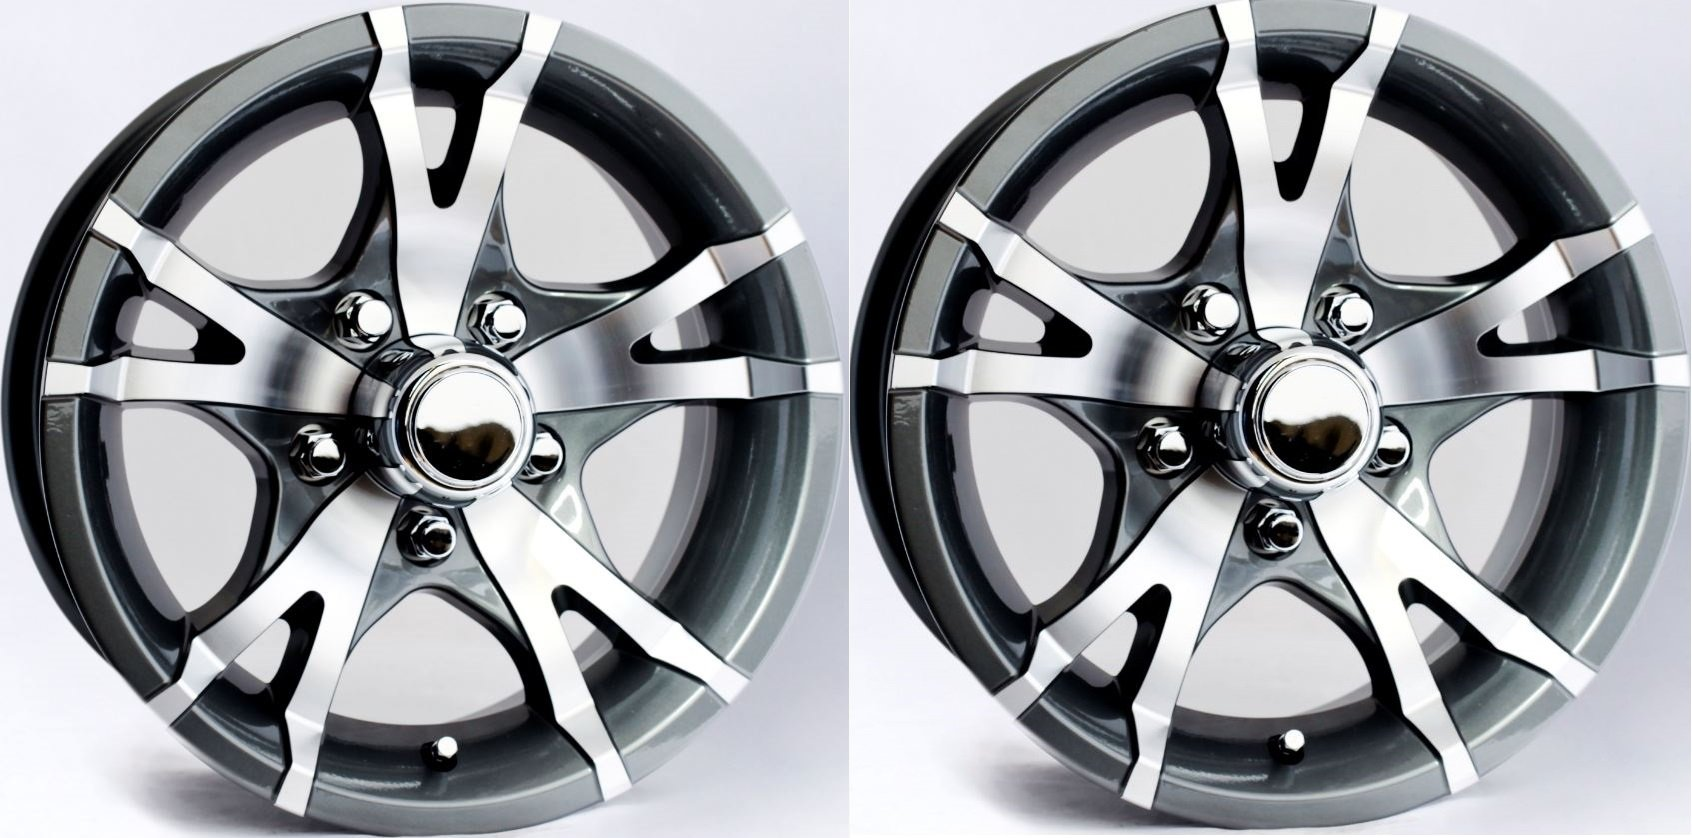 "eCustomRim TWO (2) Aluminum Sendel Trailer Rims Wheels 5 Lug 14"" Avalanche V-Spoke Gray"